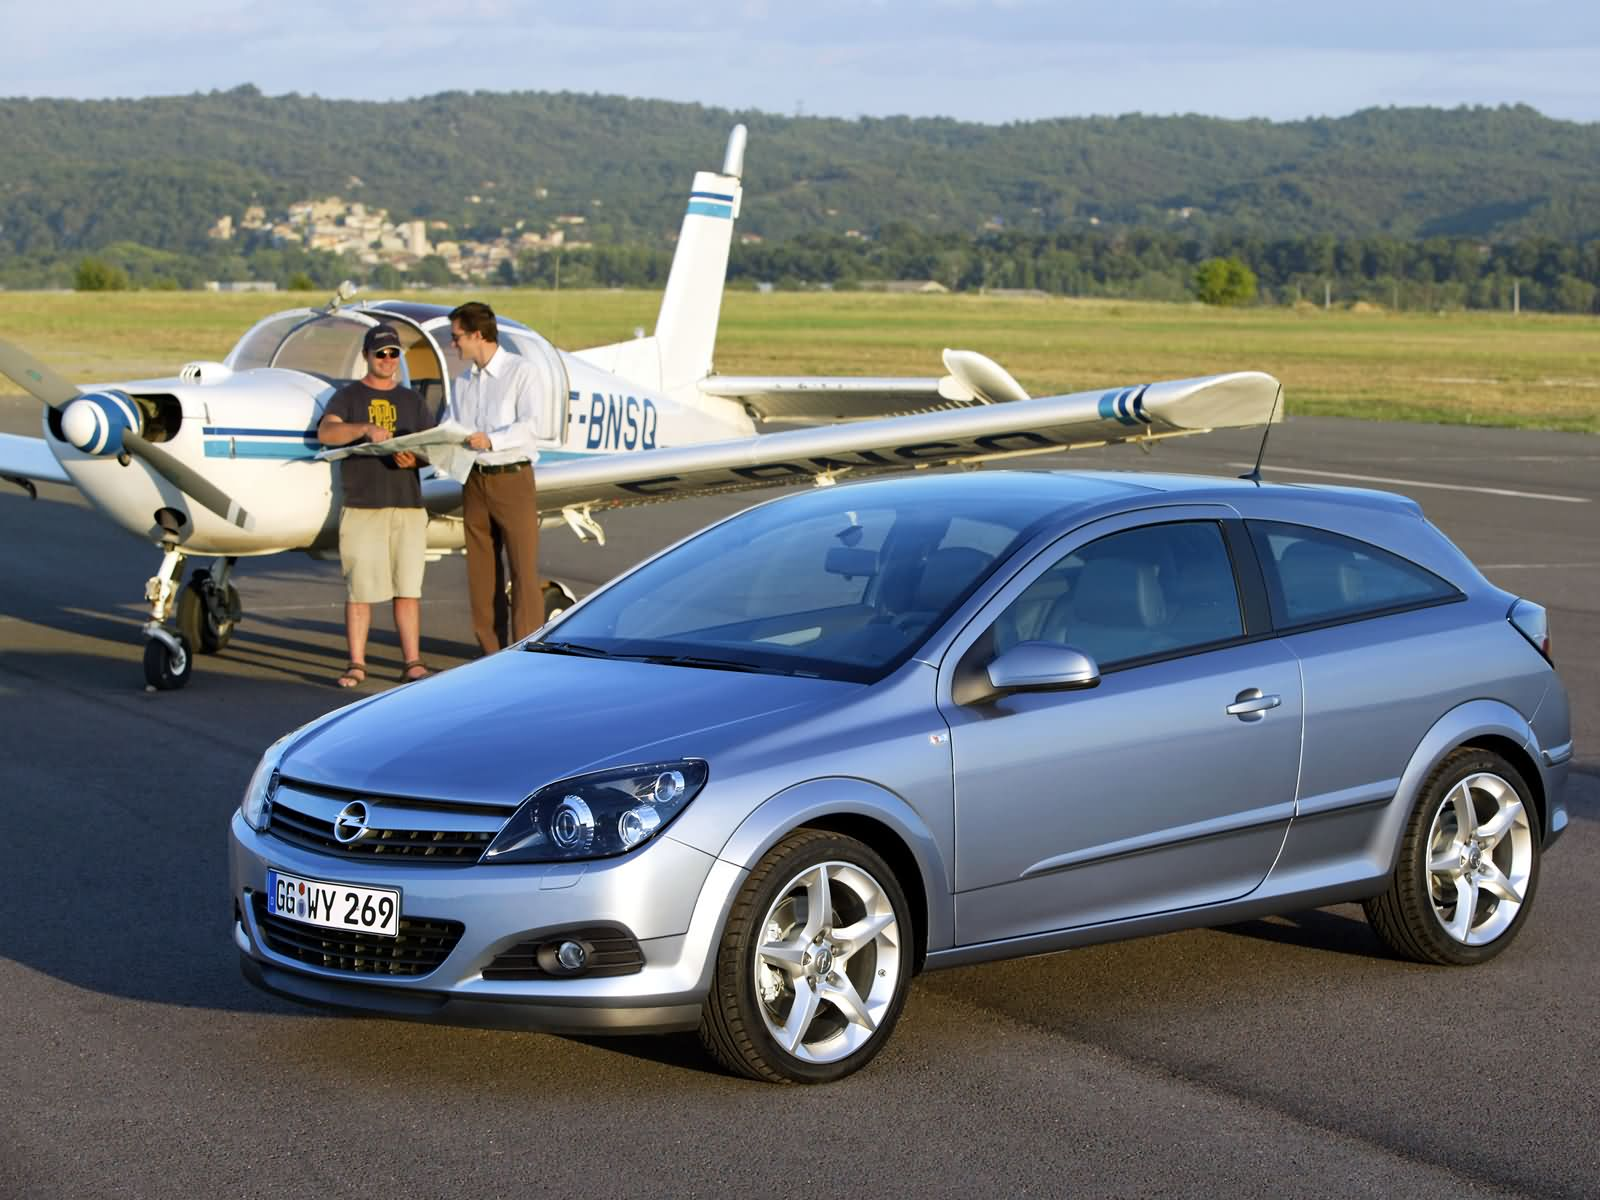 opel astra h gtc 2005 opel astra h gtc 2005 photo 04 car in pictures car photo gallery. Black Bedroom Furniture Sets. Home Design Ideas